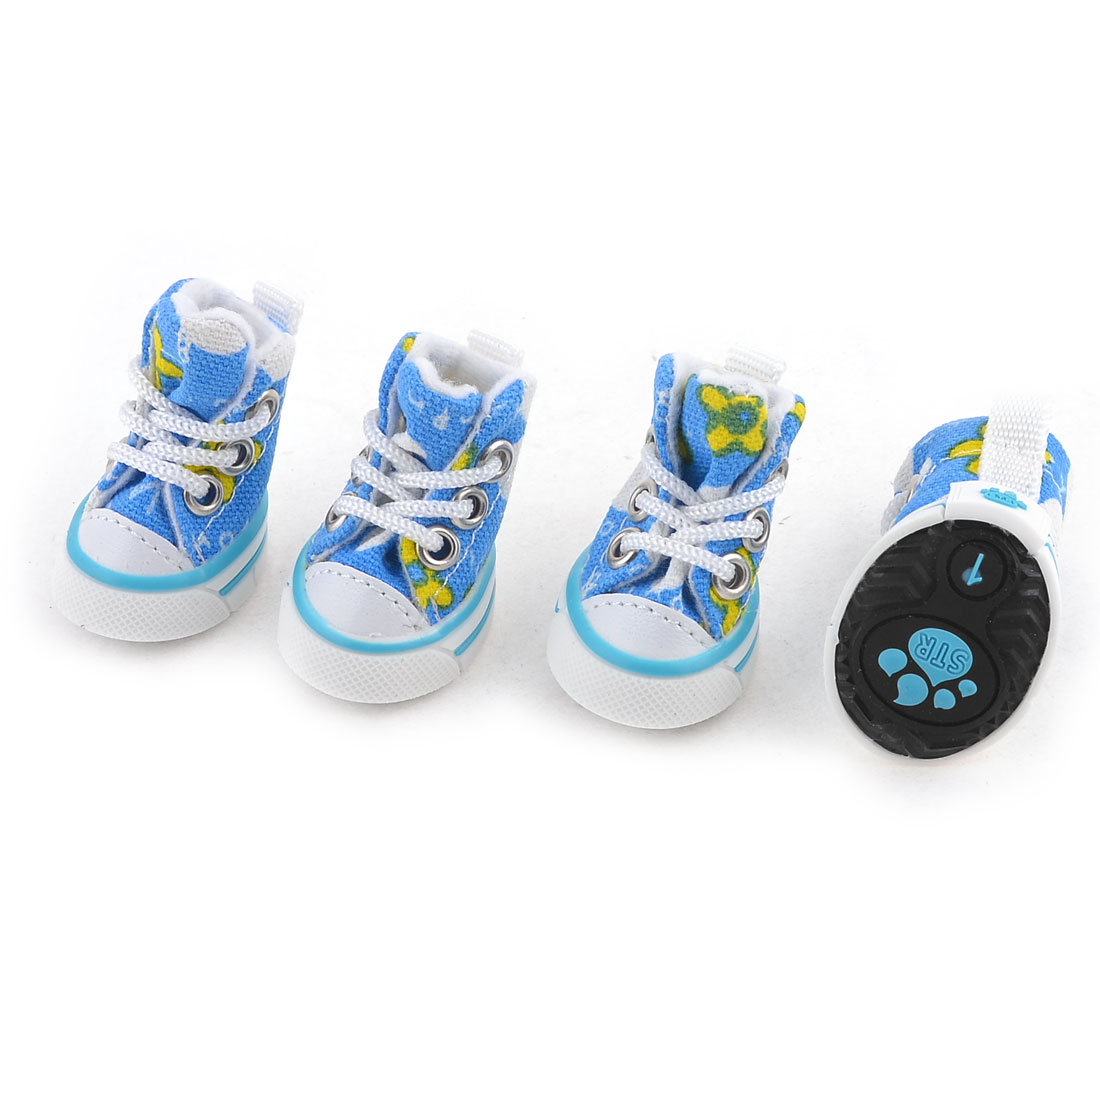 2 Pairs White Blue Rubber Sole Flower Print Pet Dog Shoes Sneakers XXS